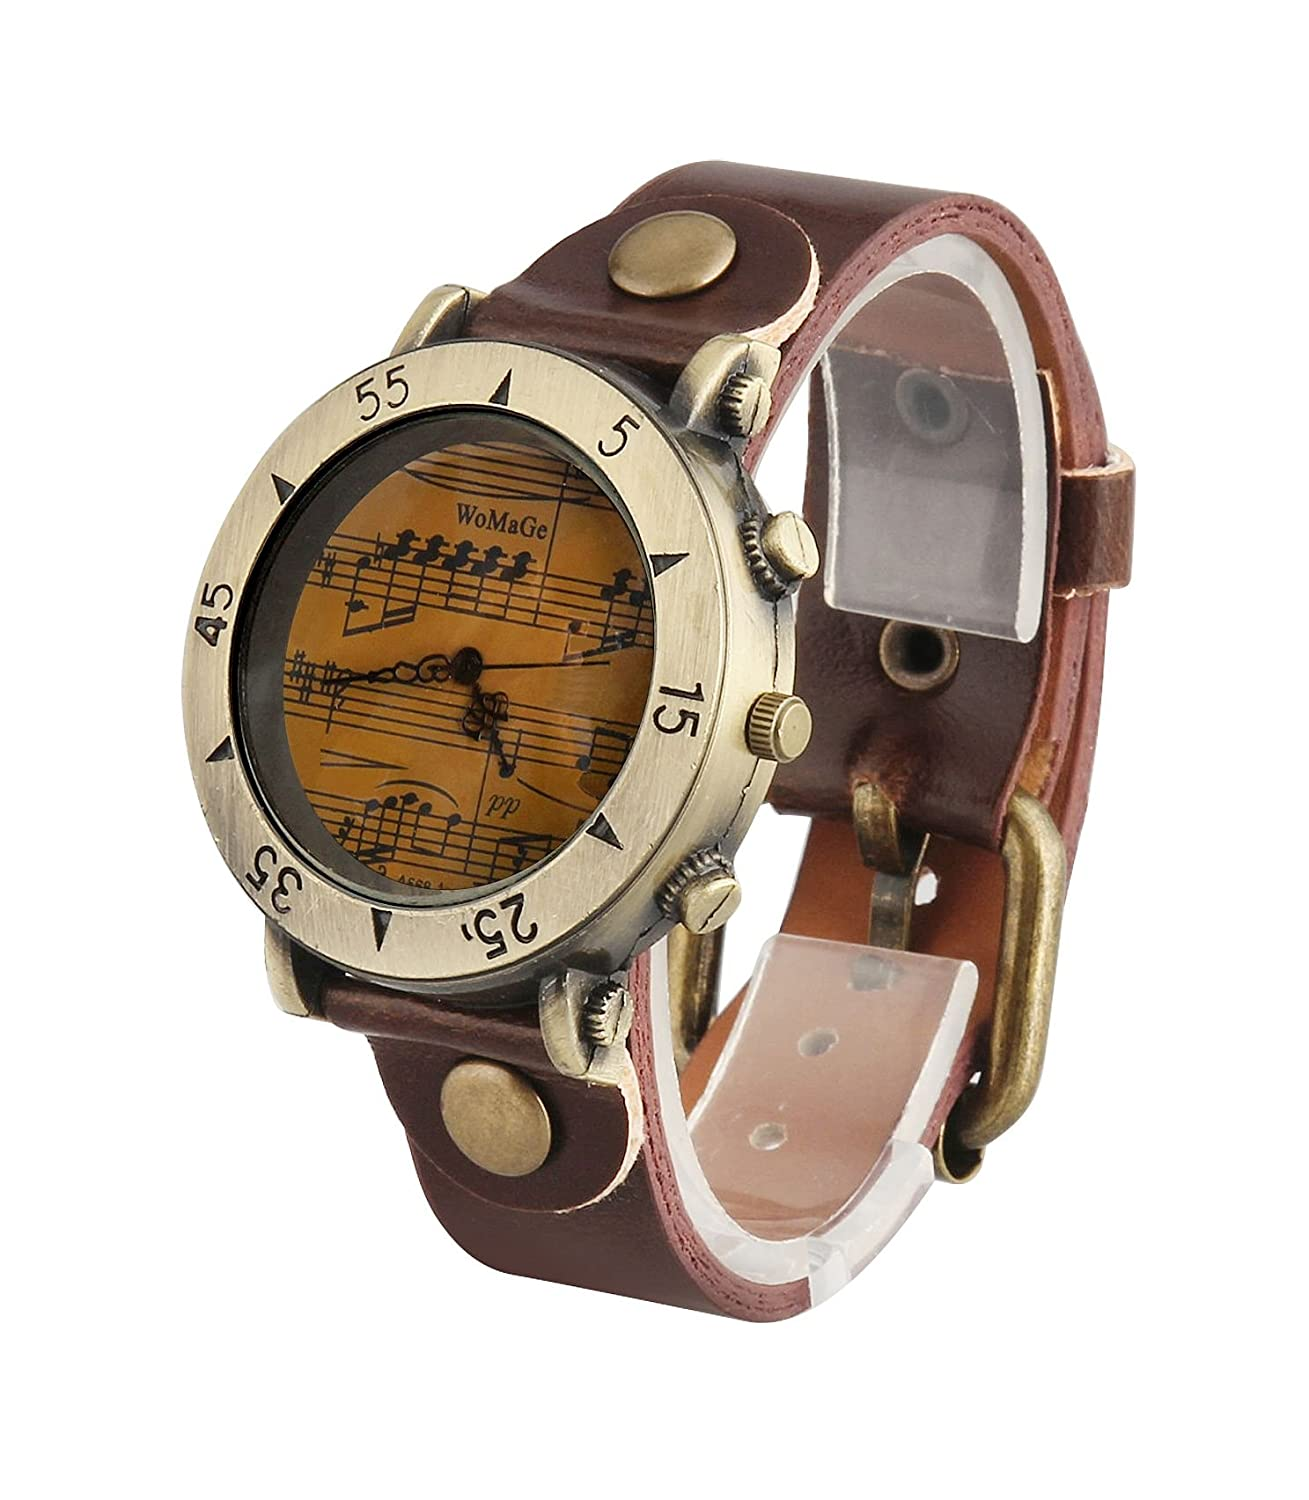 ShoppeWatch Mens Watch Brown Dial Music Symbols Leather Band Reloj Hombre  104-DKBR